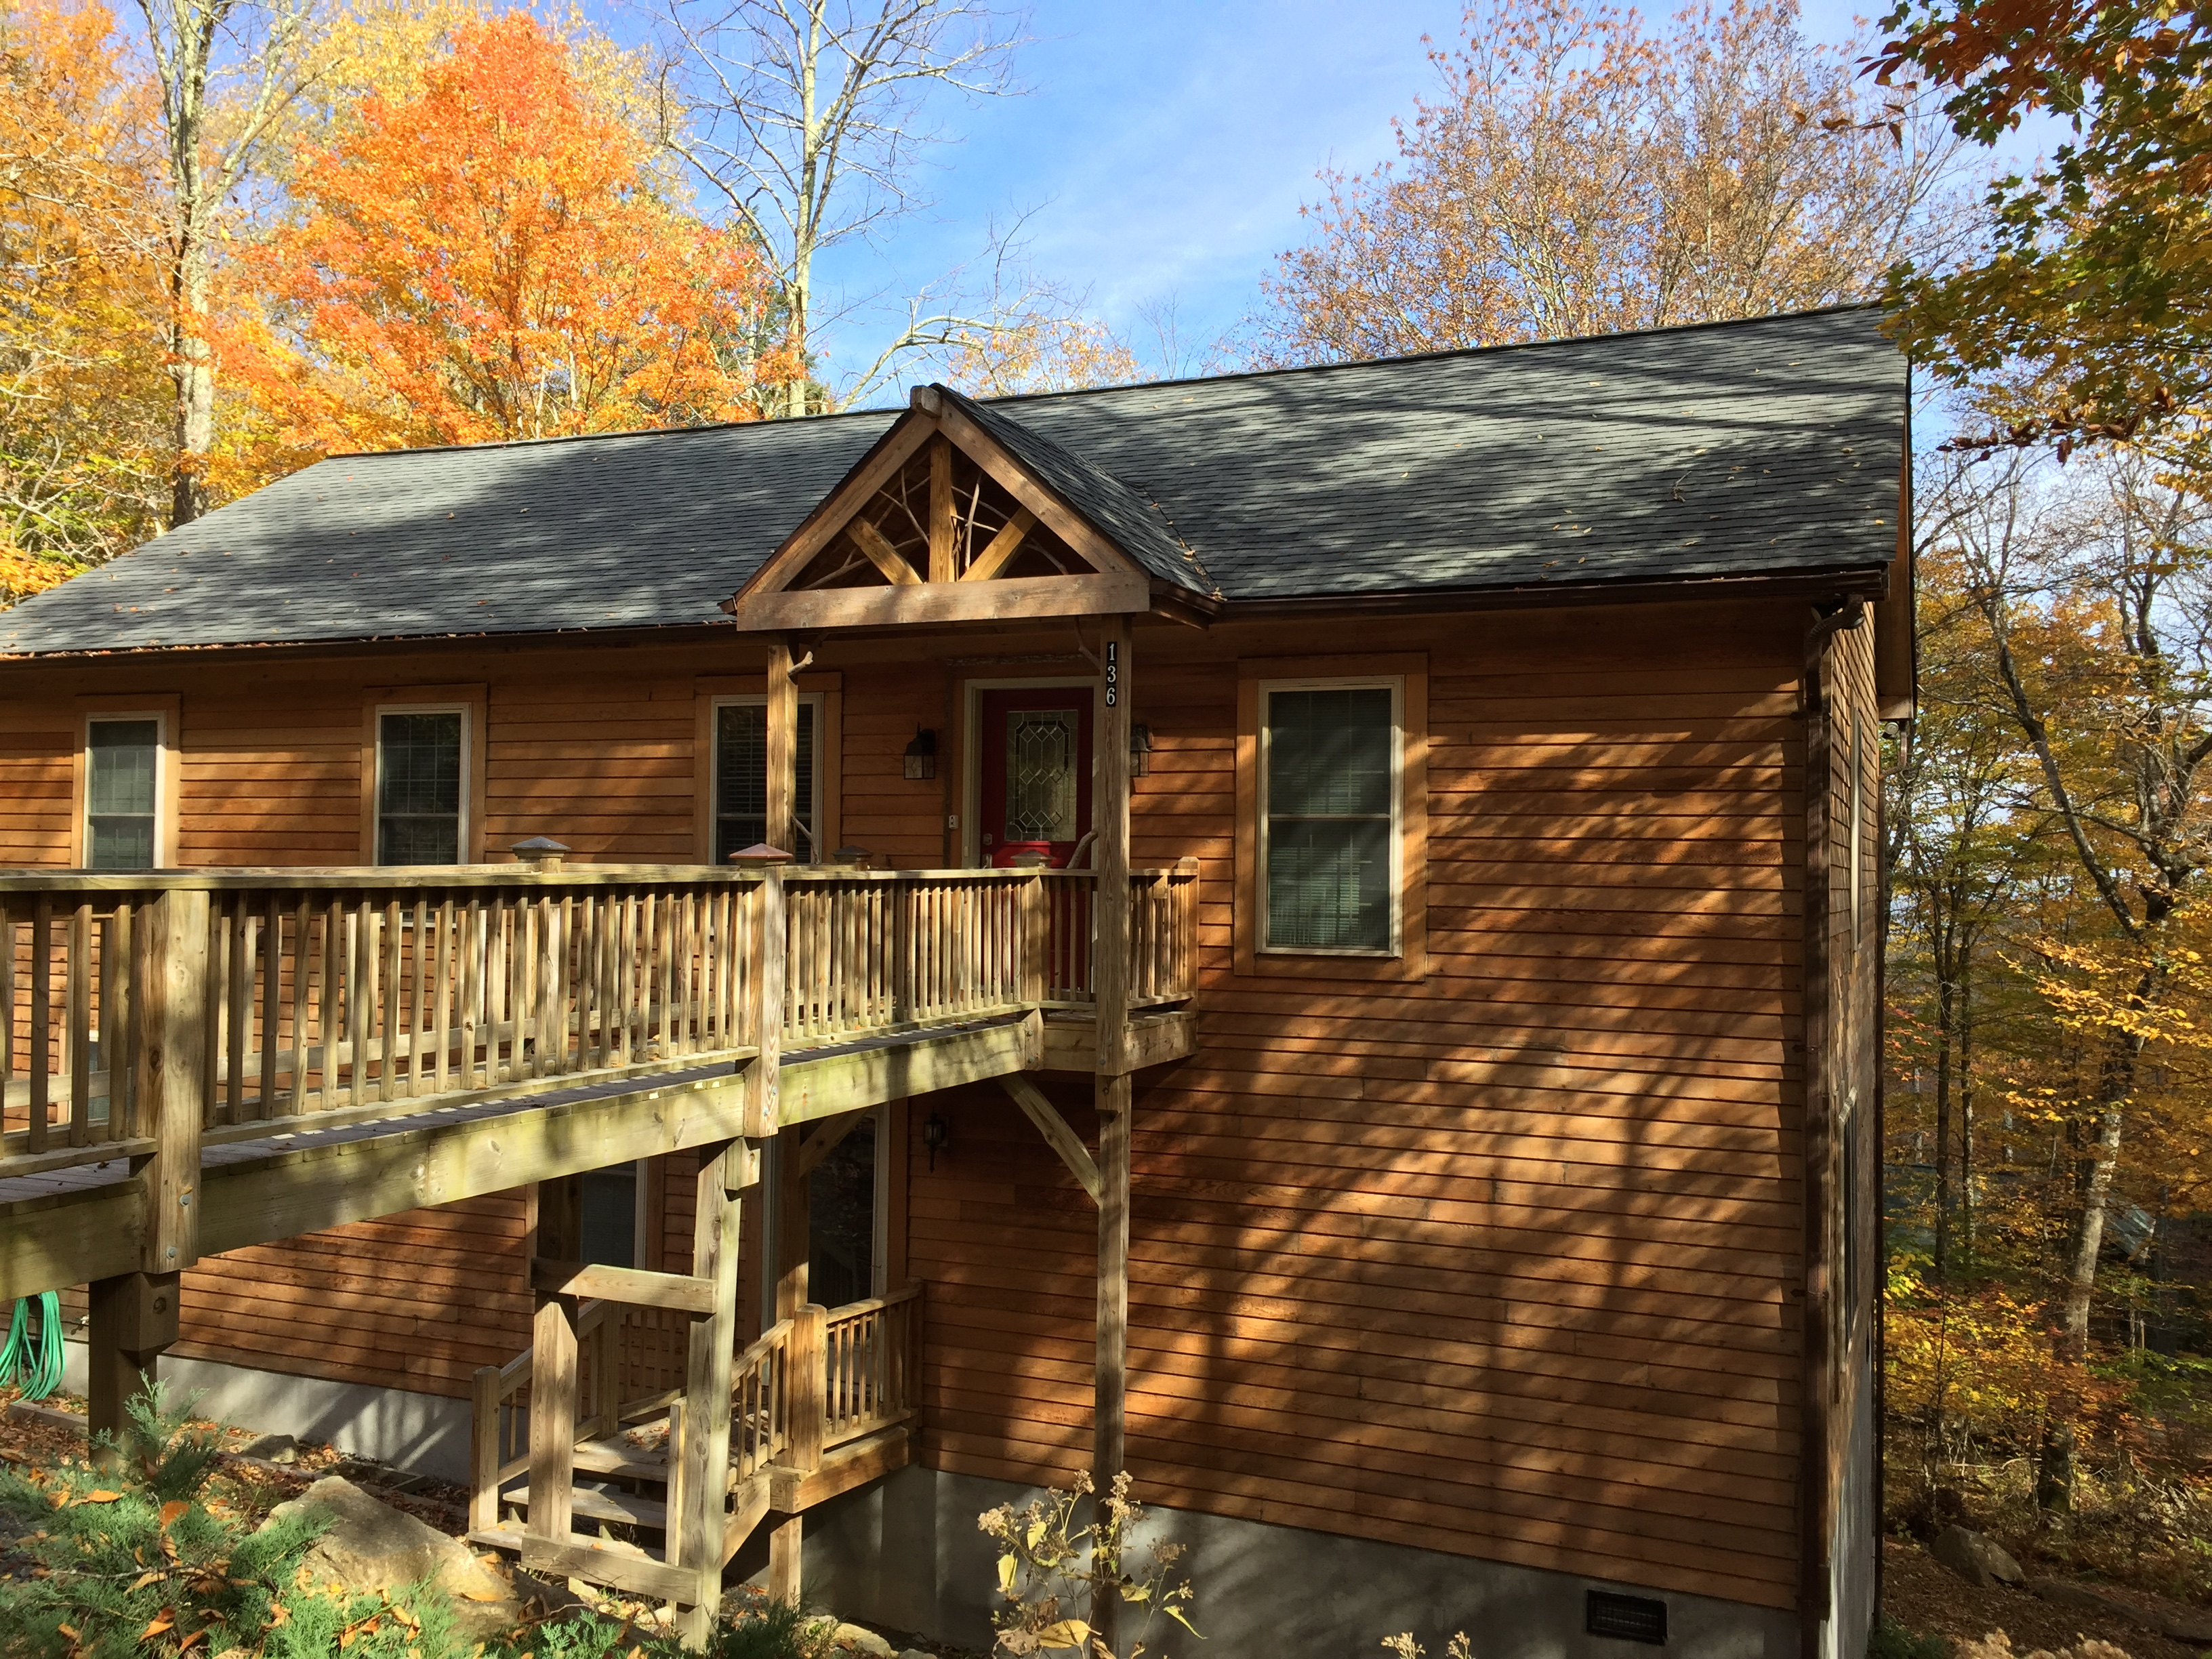 cabins in cabin rental on with acres toxaway htm for nc lake trails mountain sale vacation rentals cottages